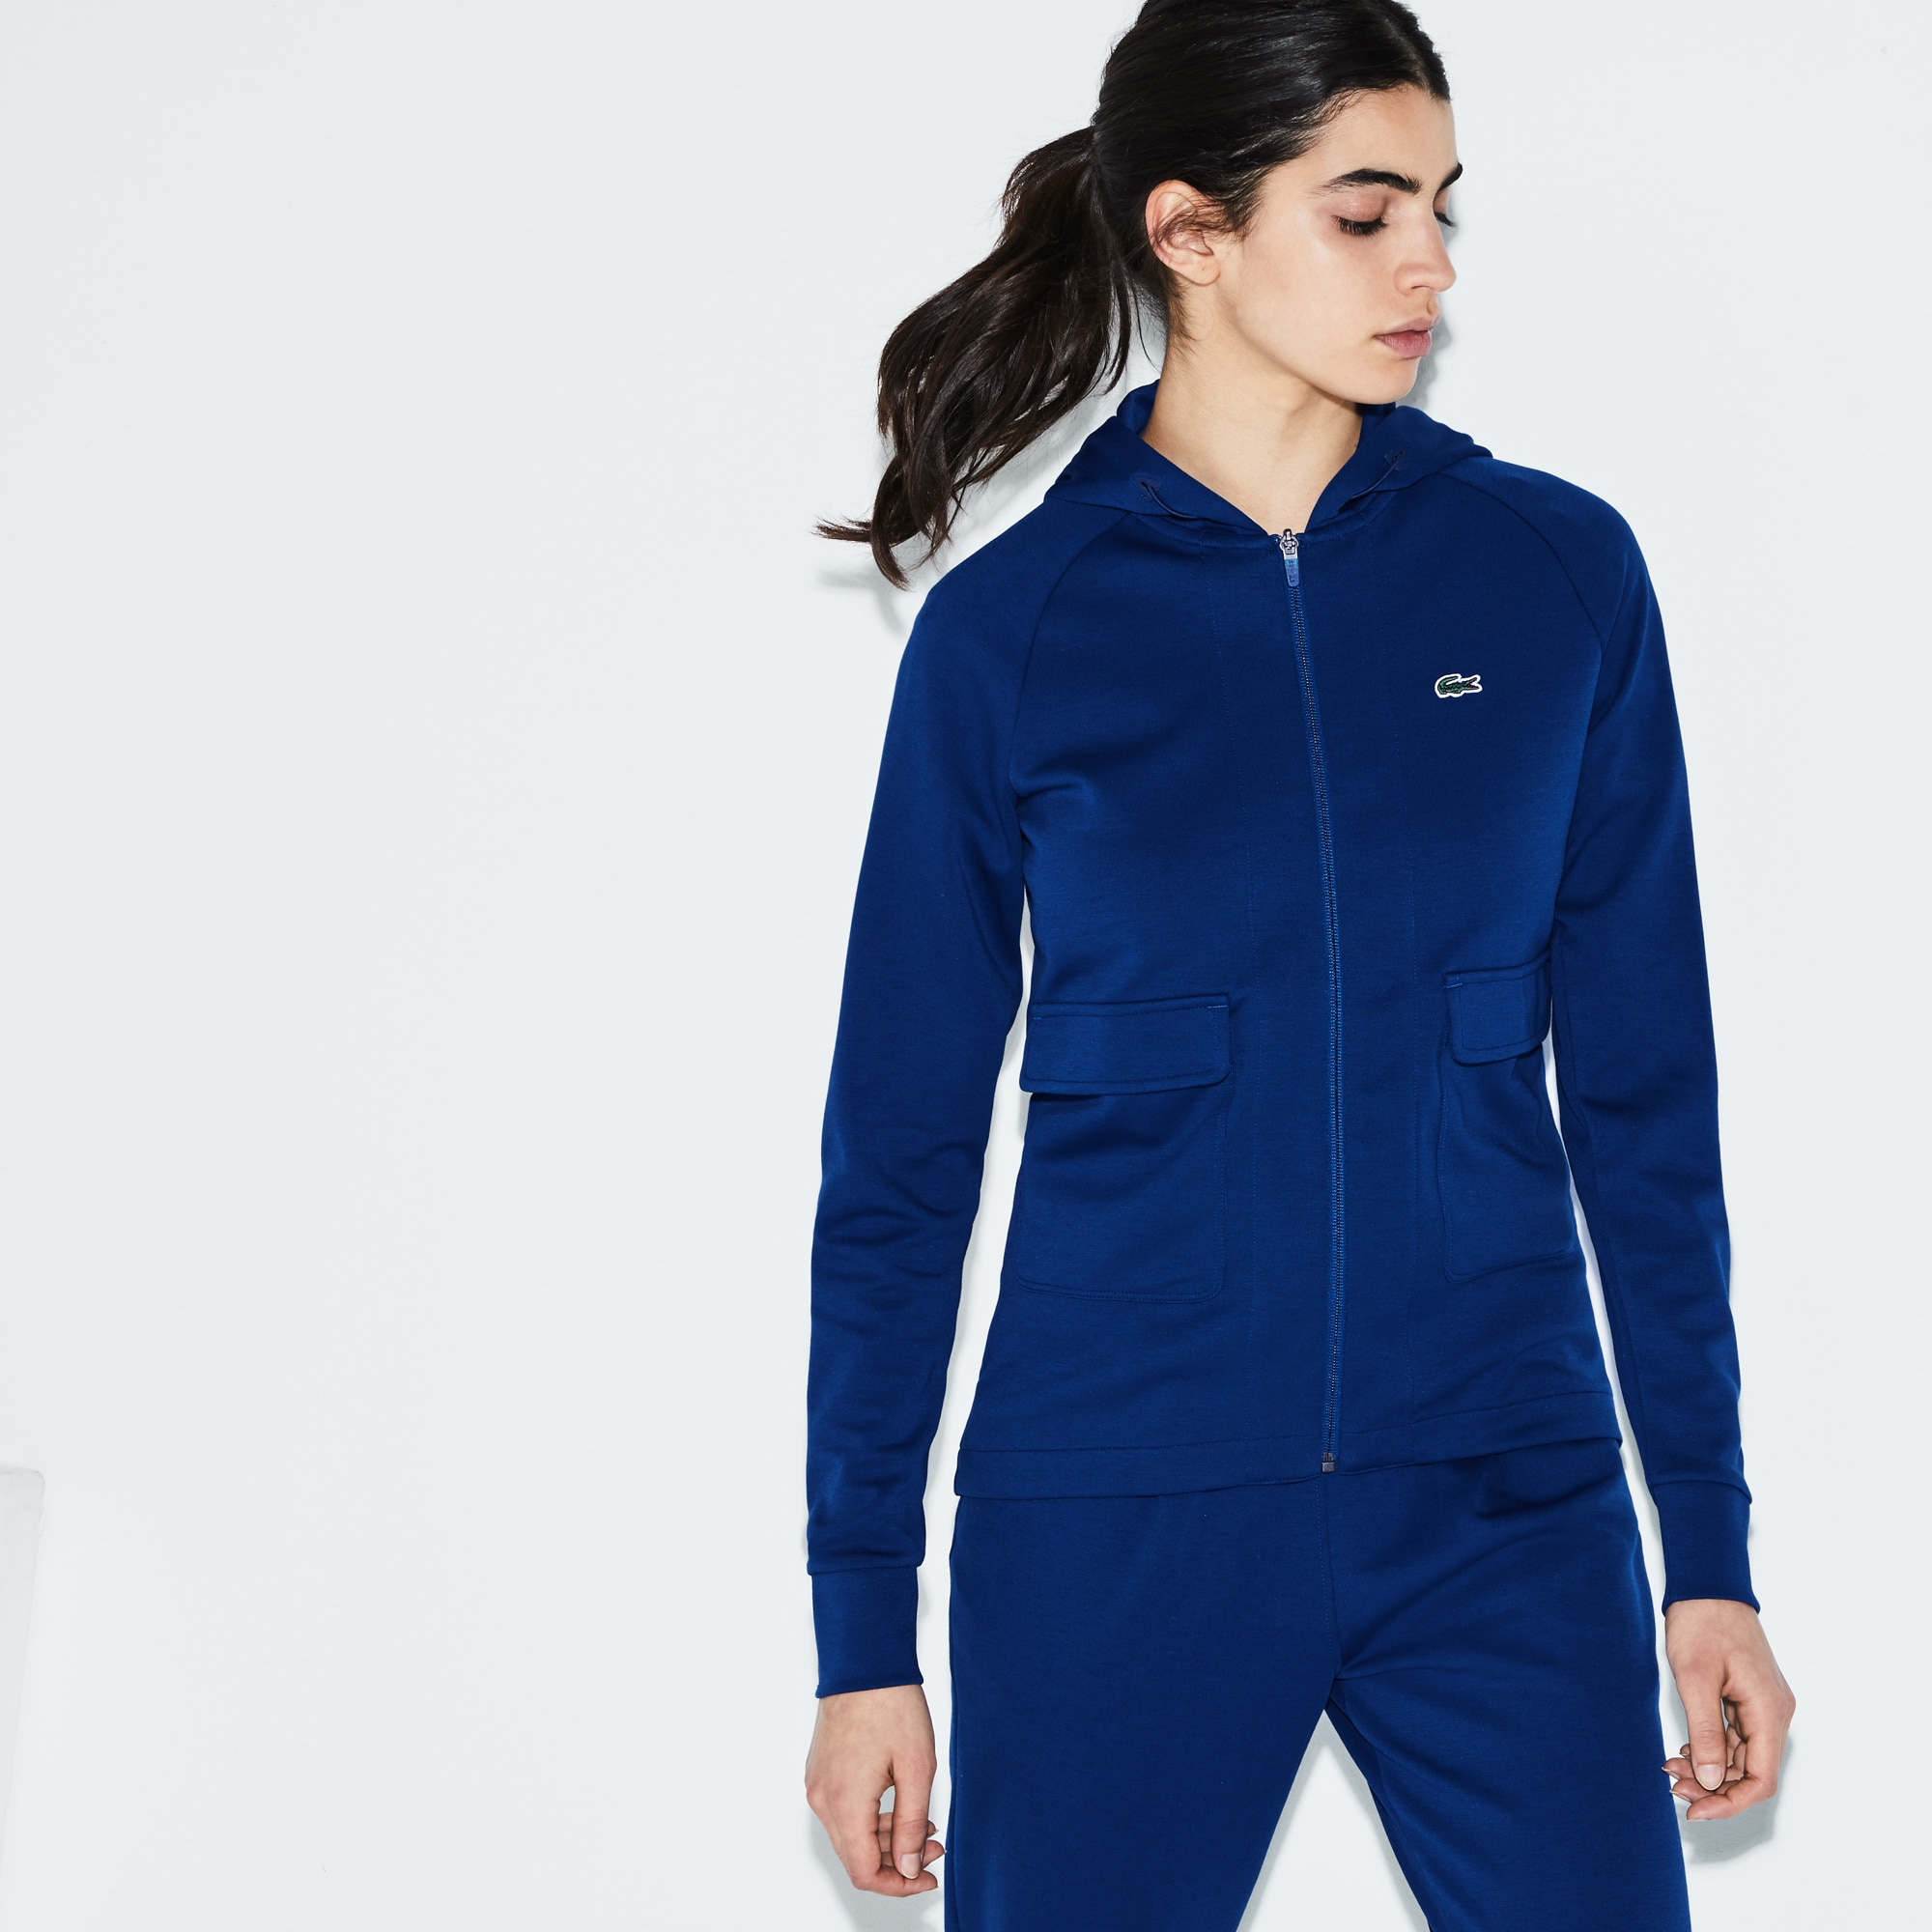 Women's Lacoste SPORT Hooded Zip Cotton Tennis Sweatshirt